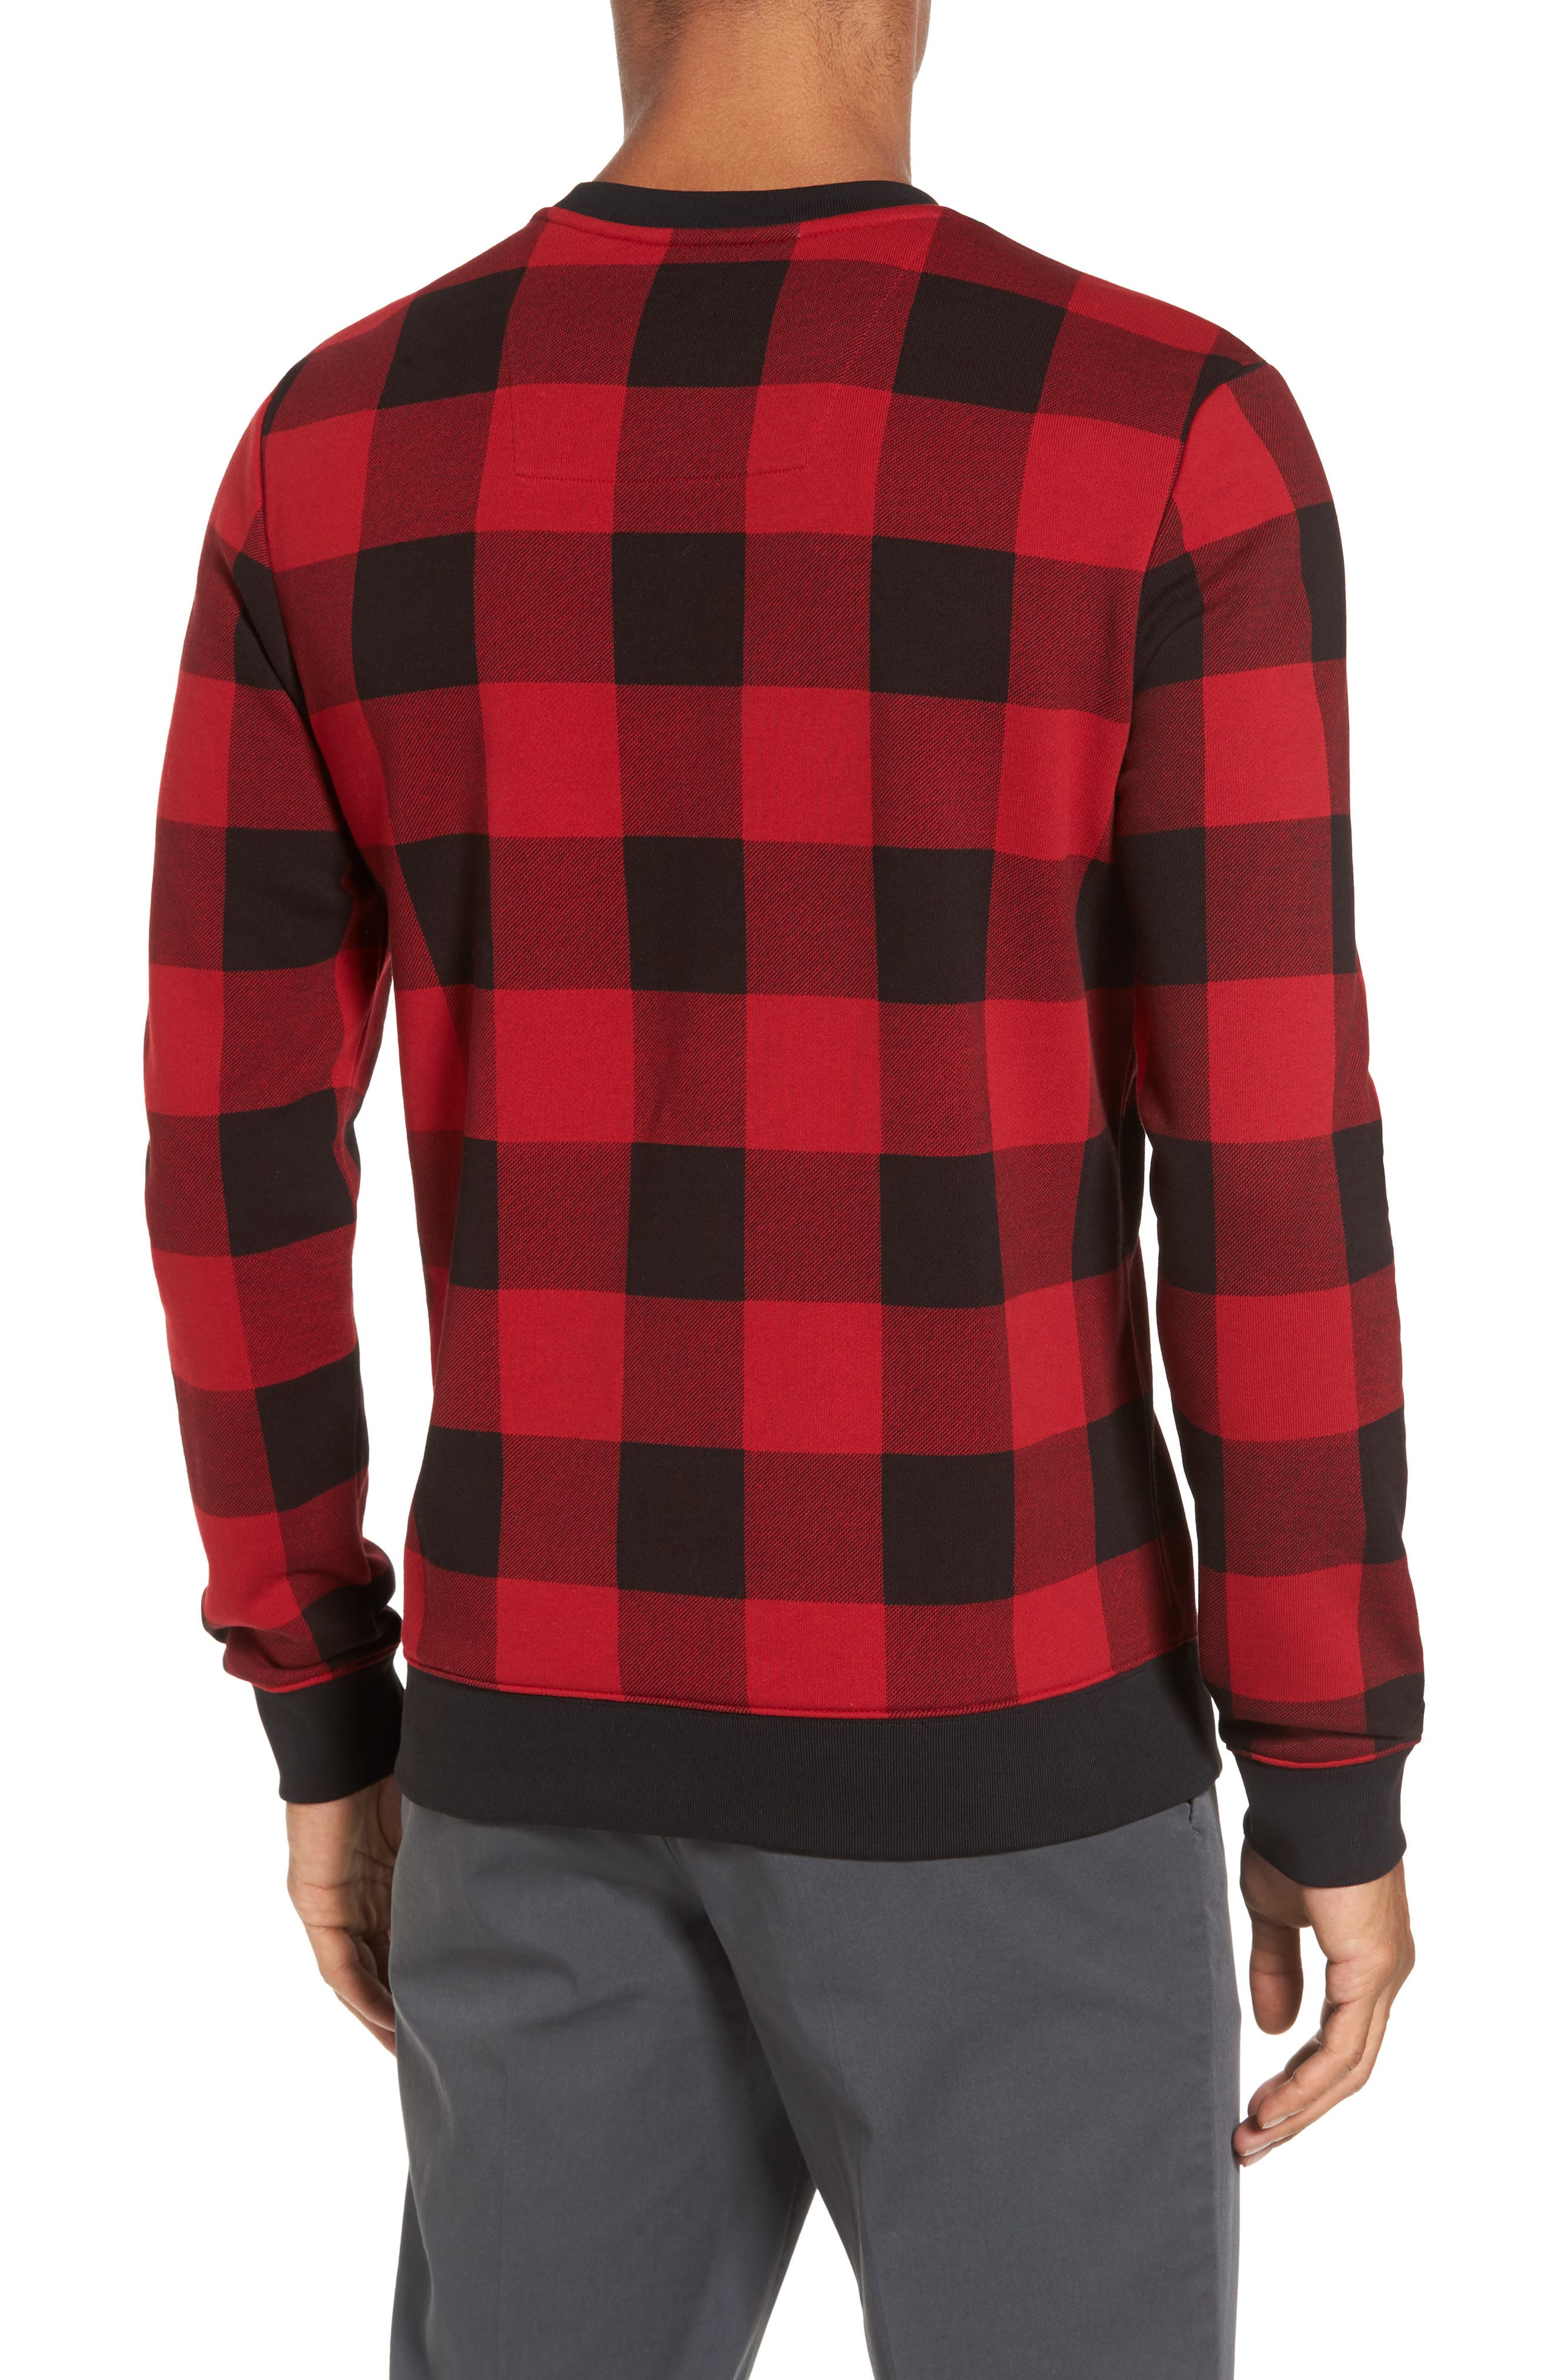 Skubic Check Slim Fit Sweater,                             Alternate thumbnail 2, color,                             629